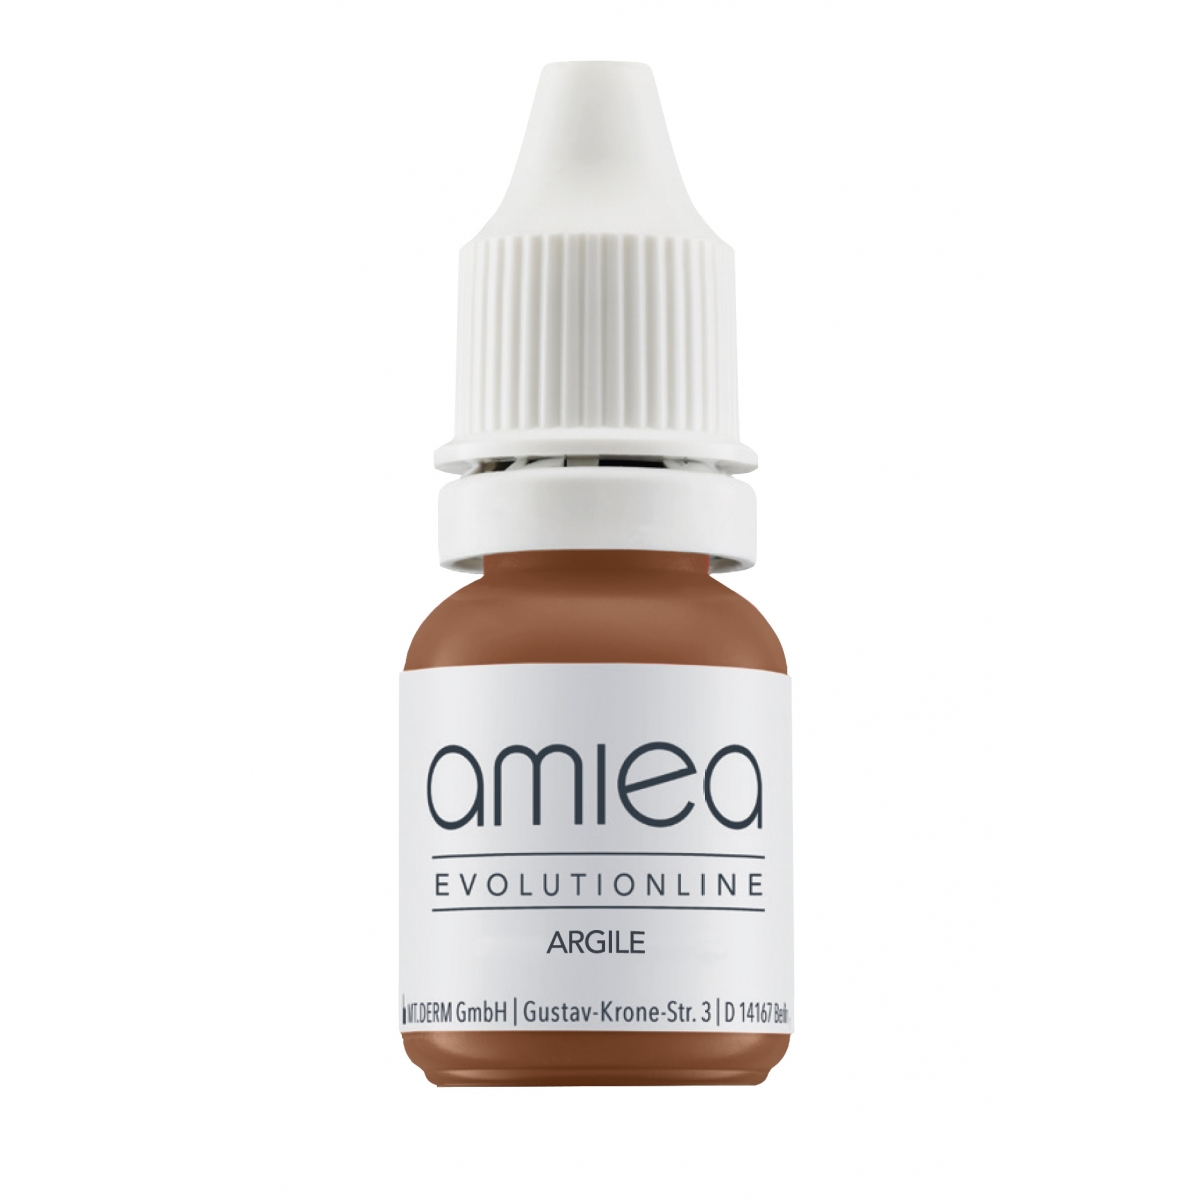 Evolutionline (5 ml) - PIGMENTS AMIEA EVOLUTIONLINE ARGILE, 5 ml